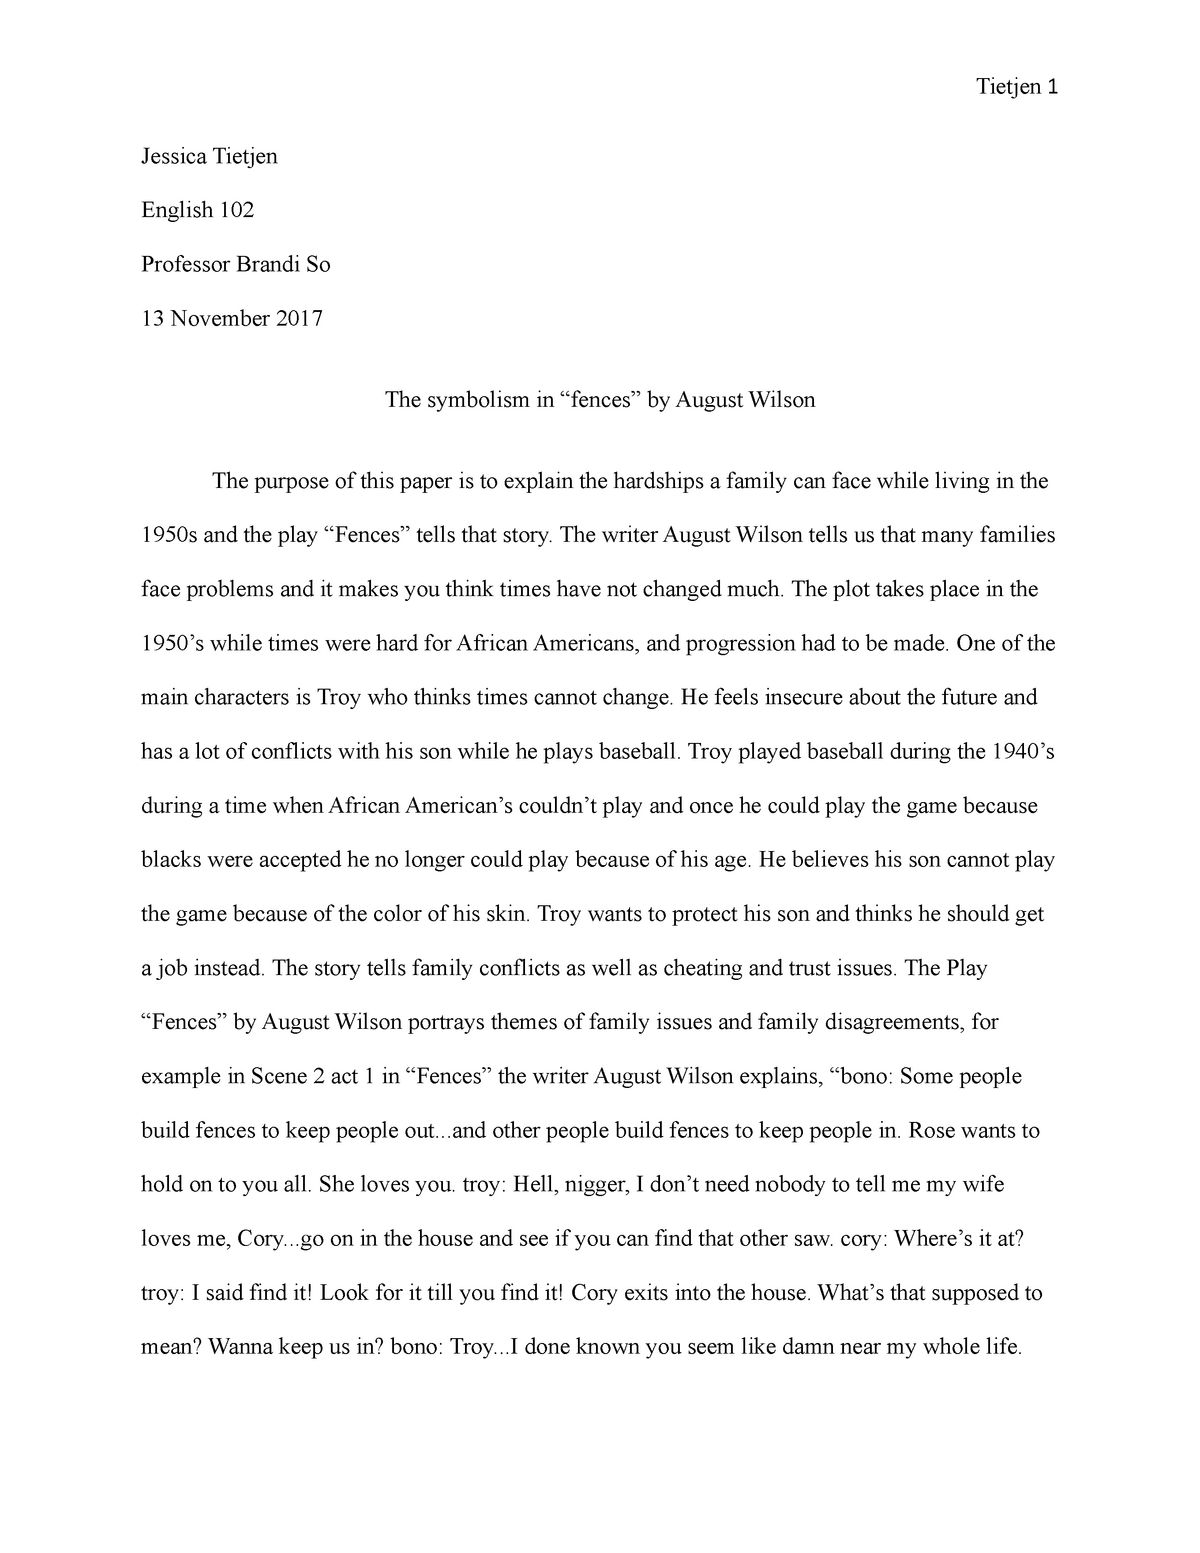 fences symbolism essay